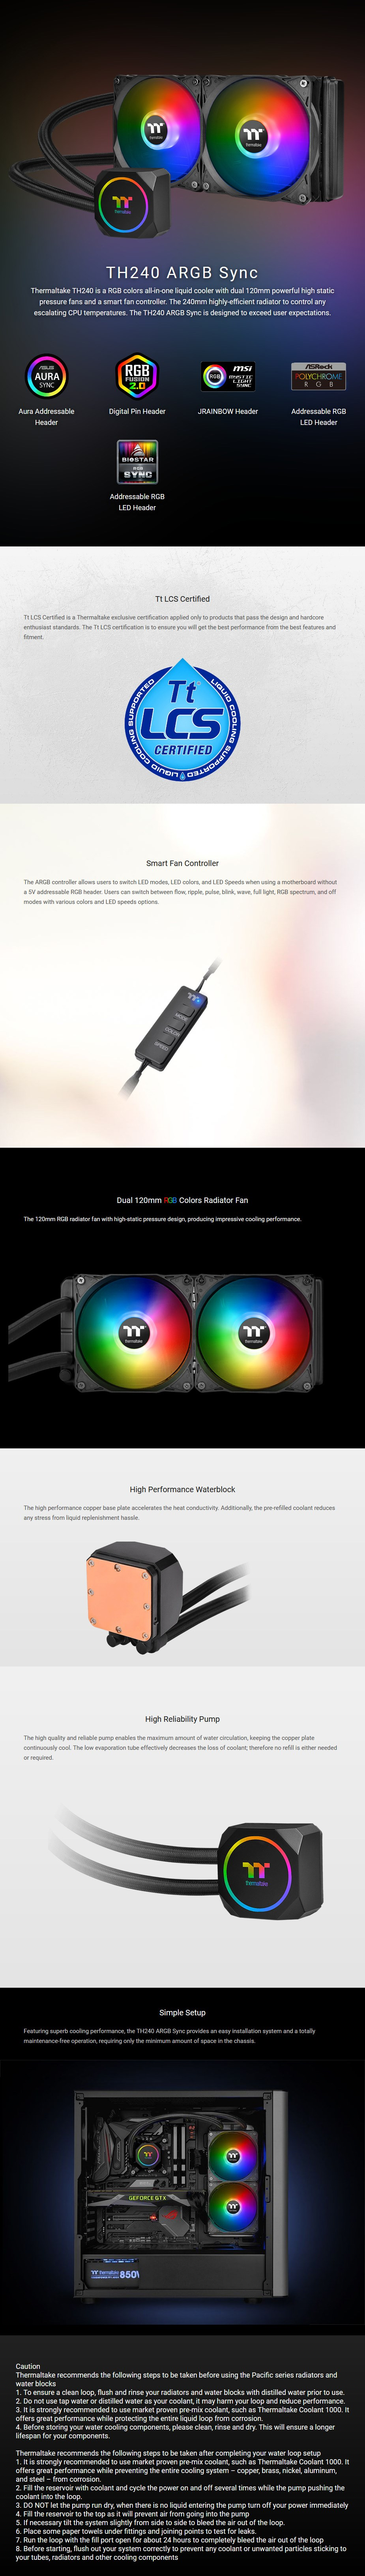 Thermaltake TH240 ARGB Sync Edition Liquid CPU Cooler - Overview 1